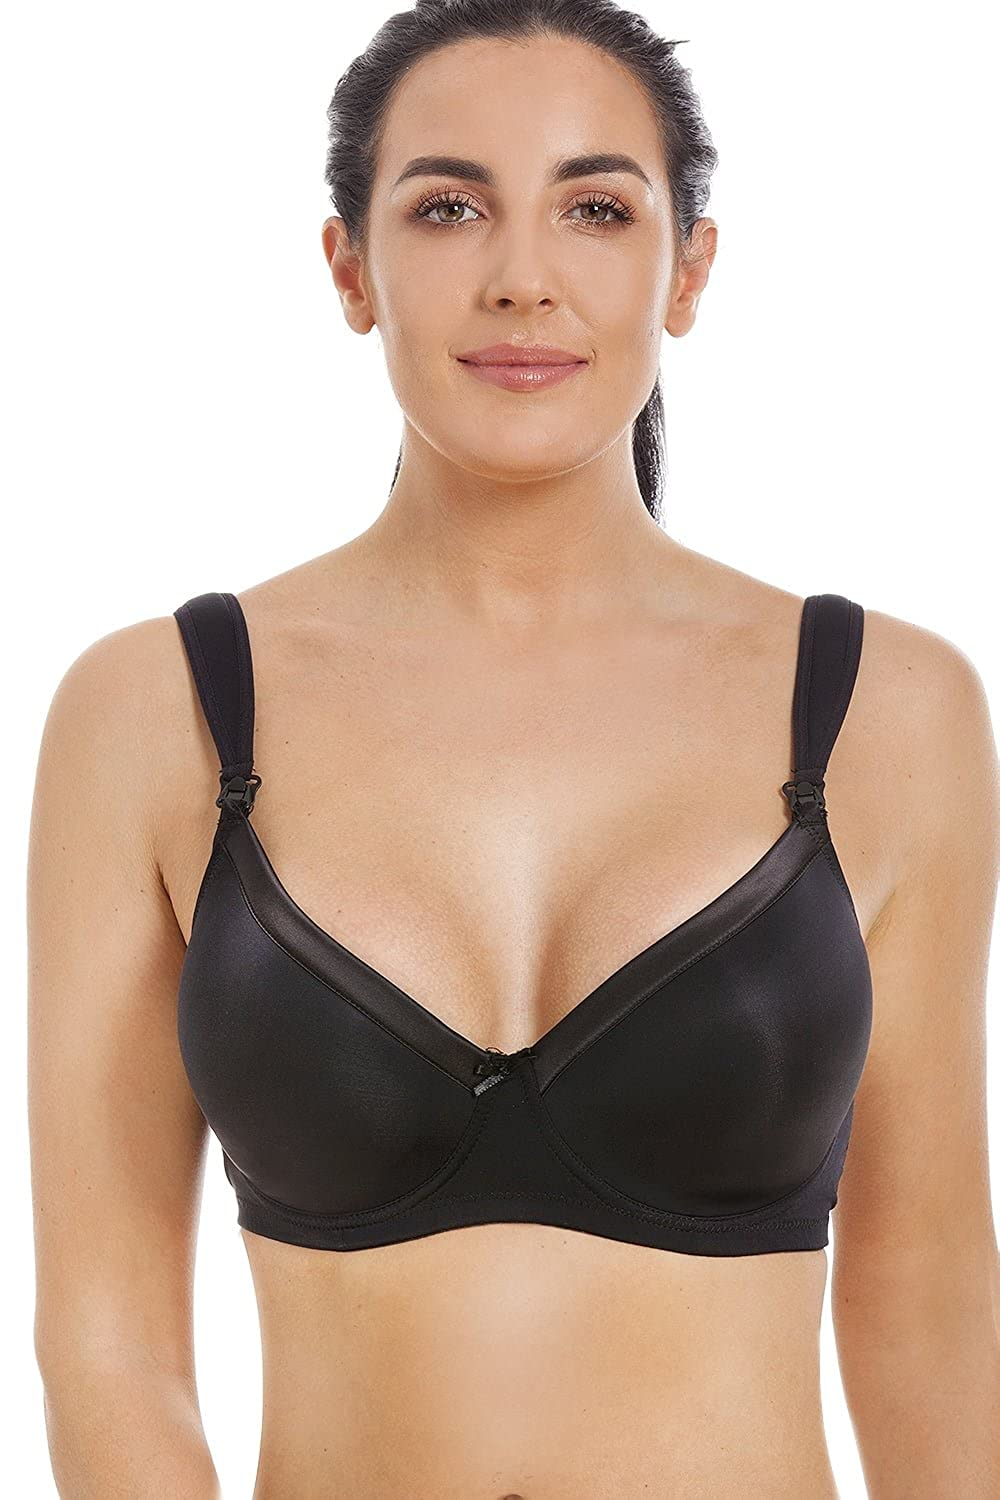 Camille Womens Ladies Black Satin Moulded Cup Underwired Nursing Bra